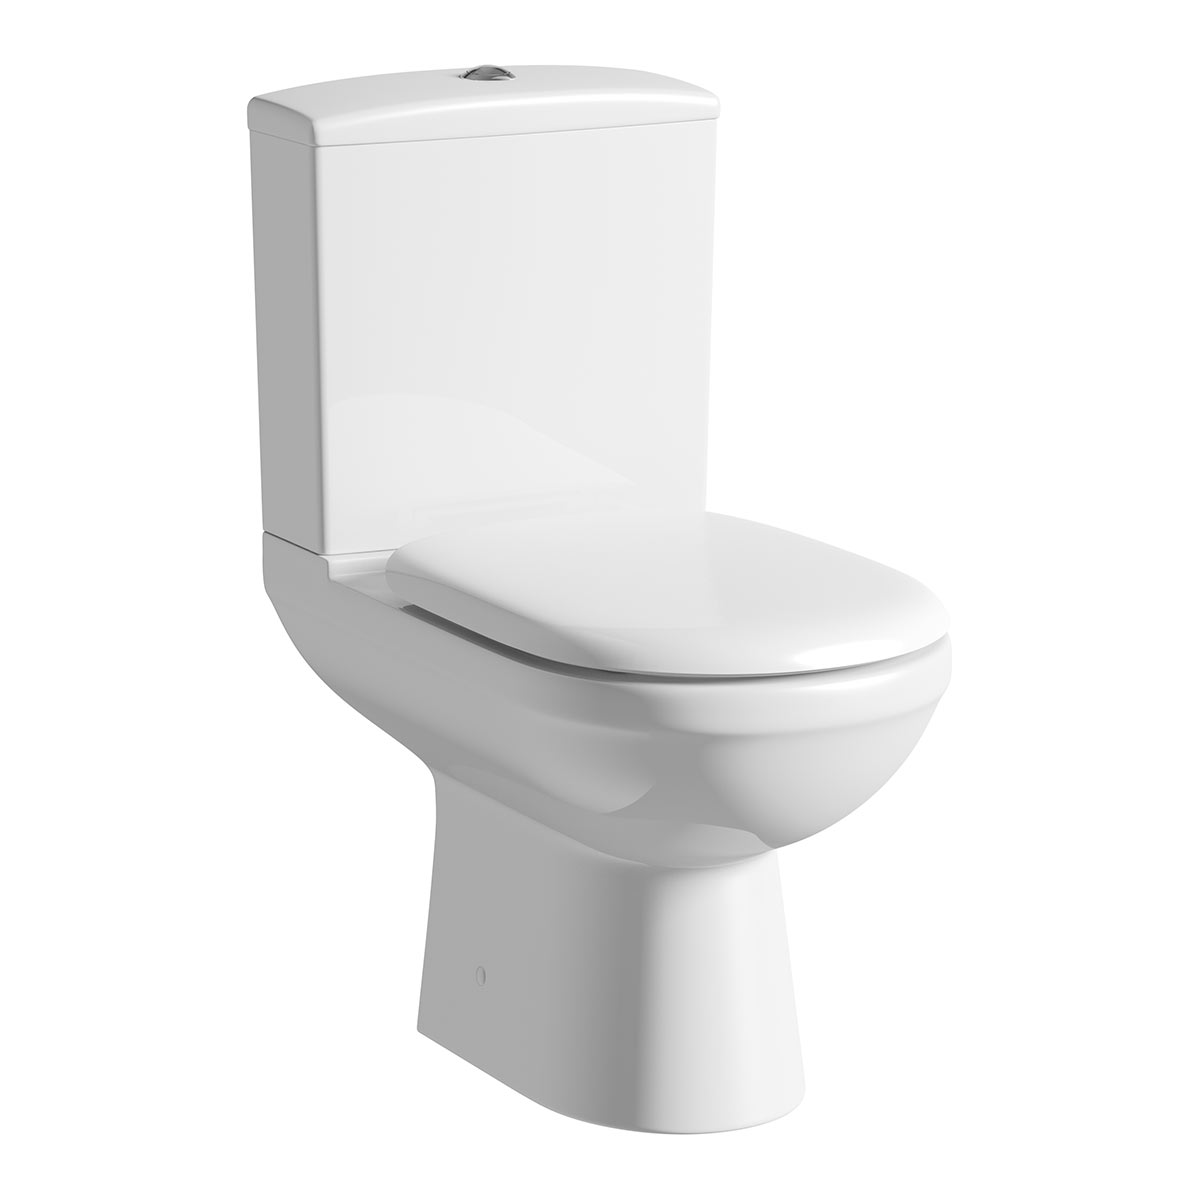 Image of Autograph Close Coupled Toilet exc Seat